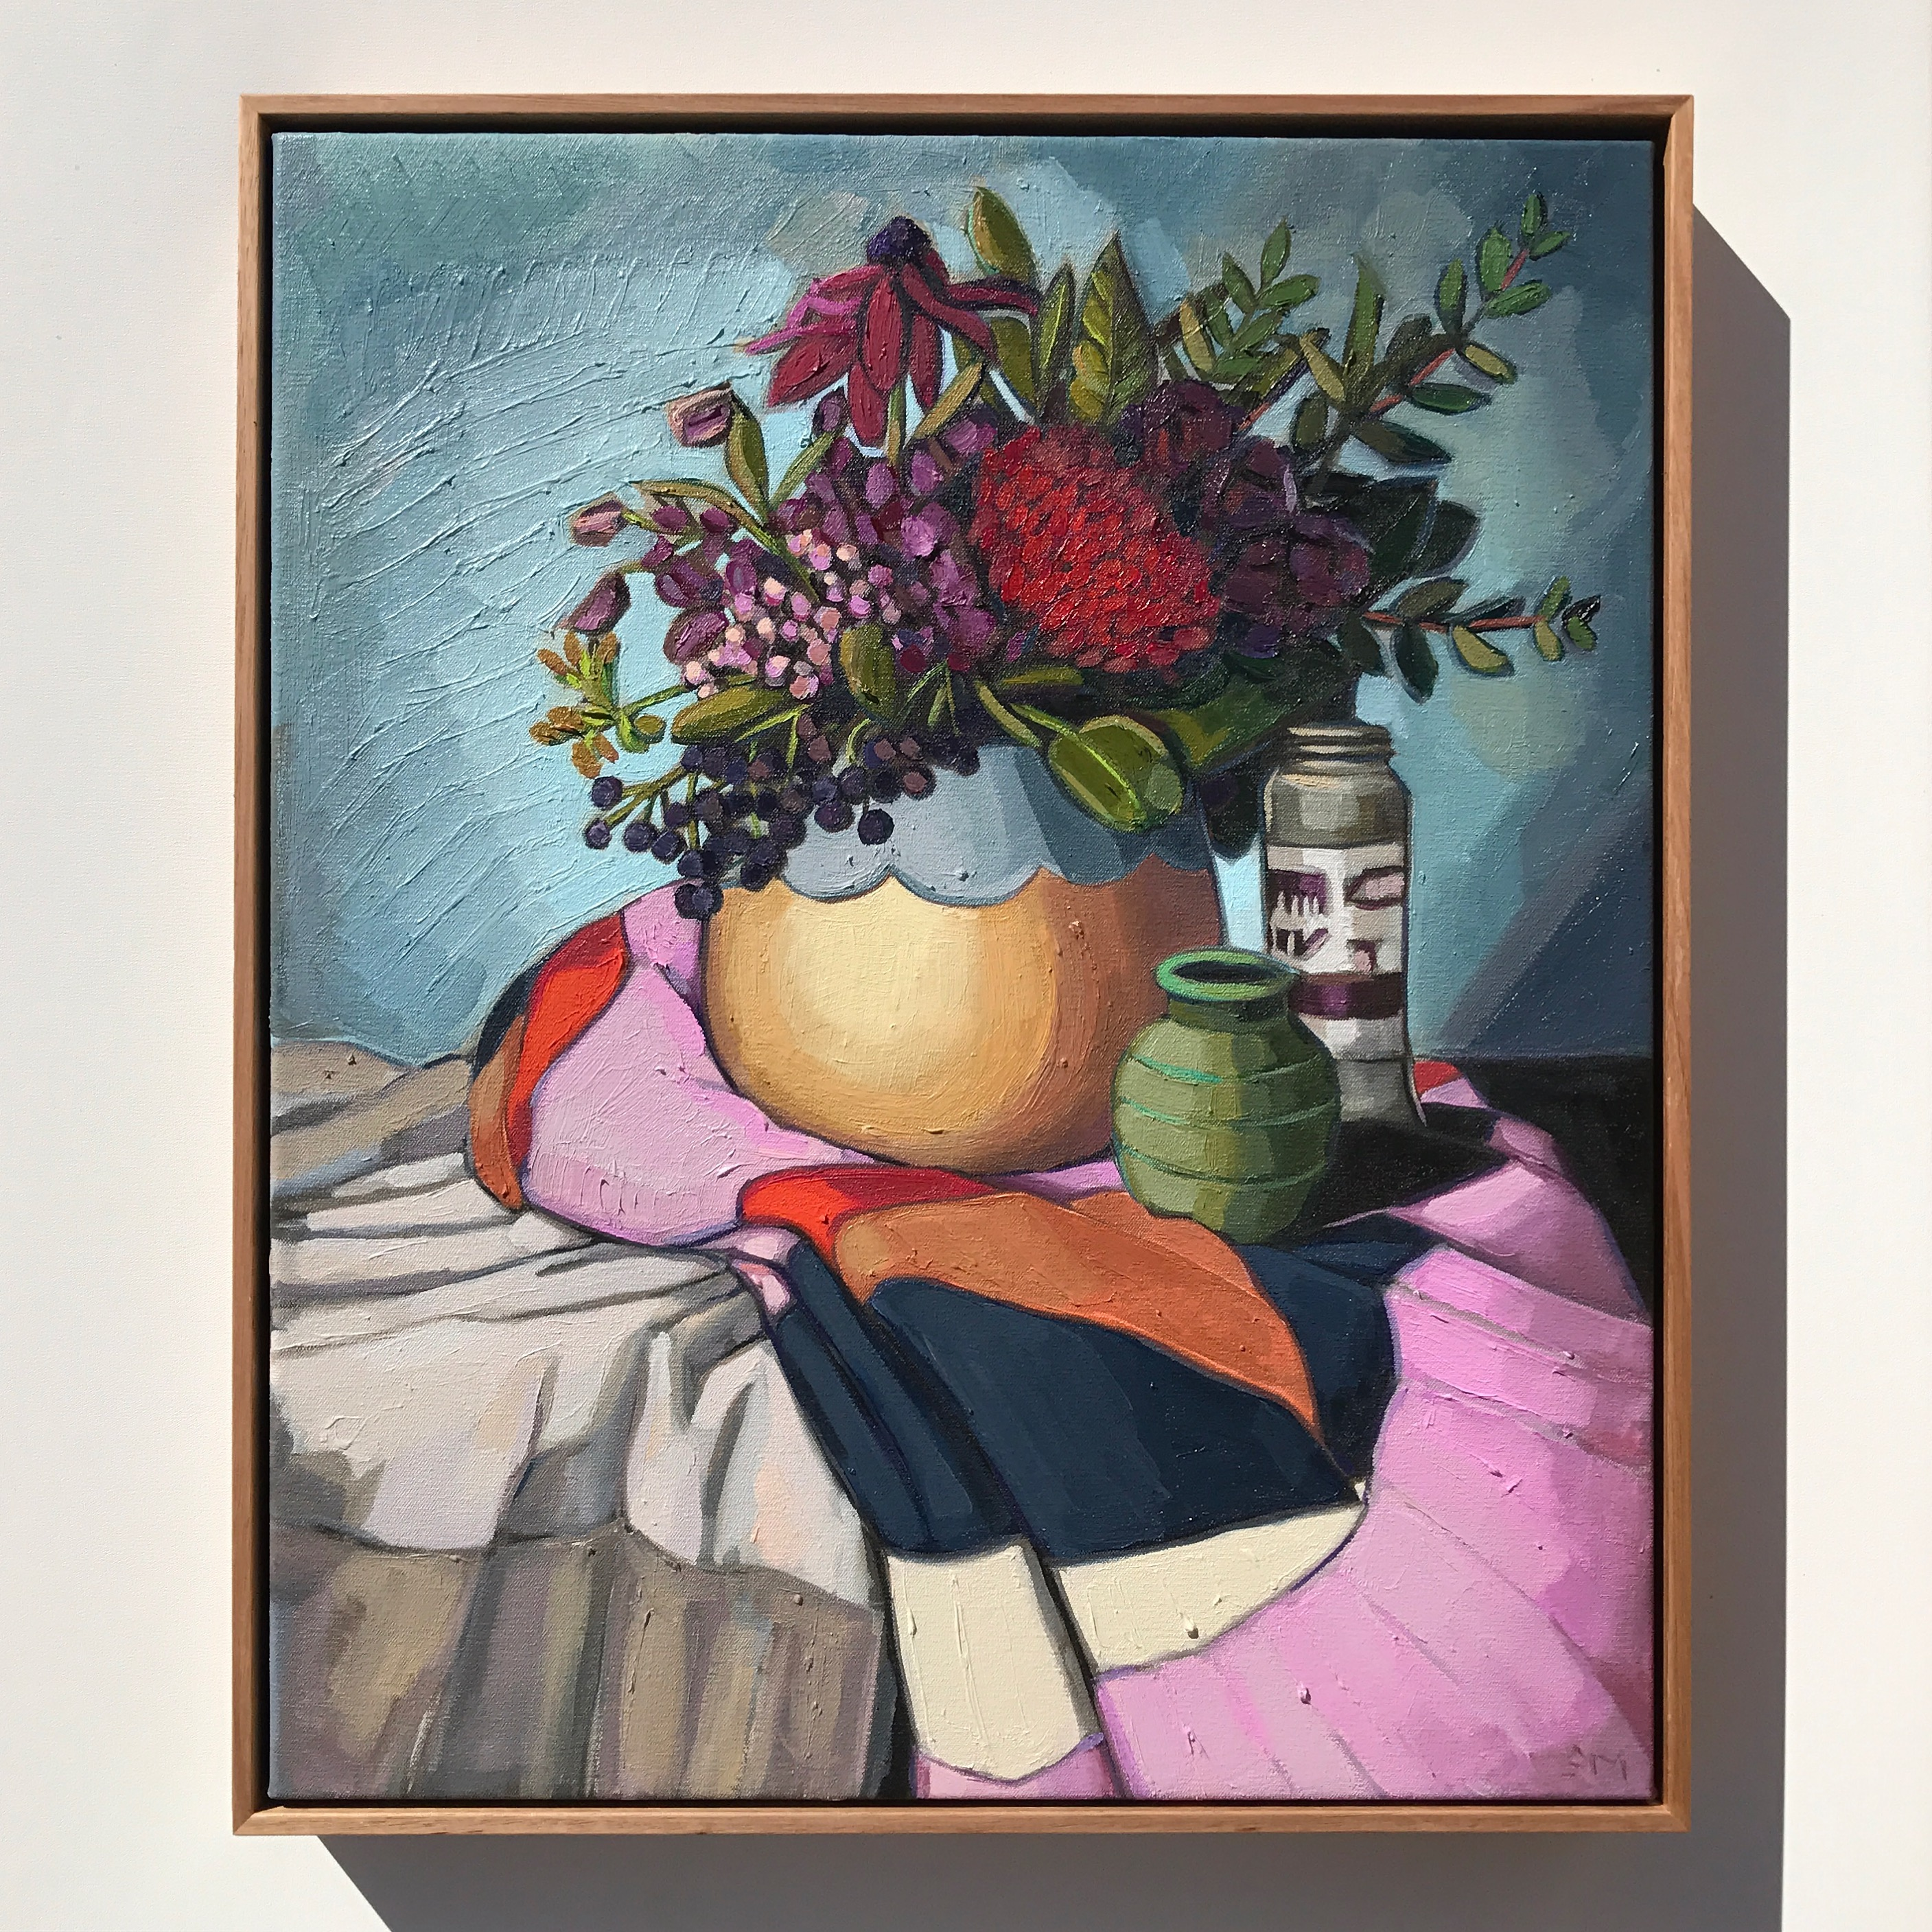 08_17 The Cloth Collection 'Bouquet & Cloth' 63x53cm $2,295